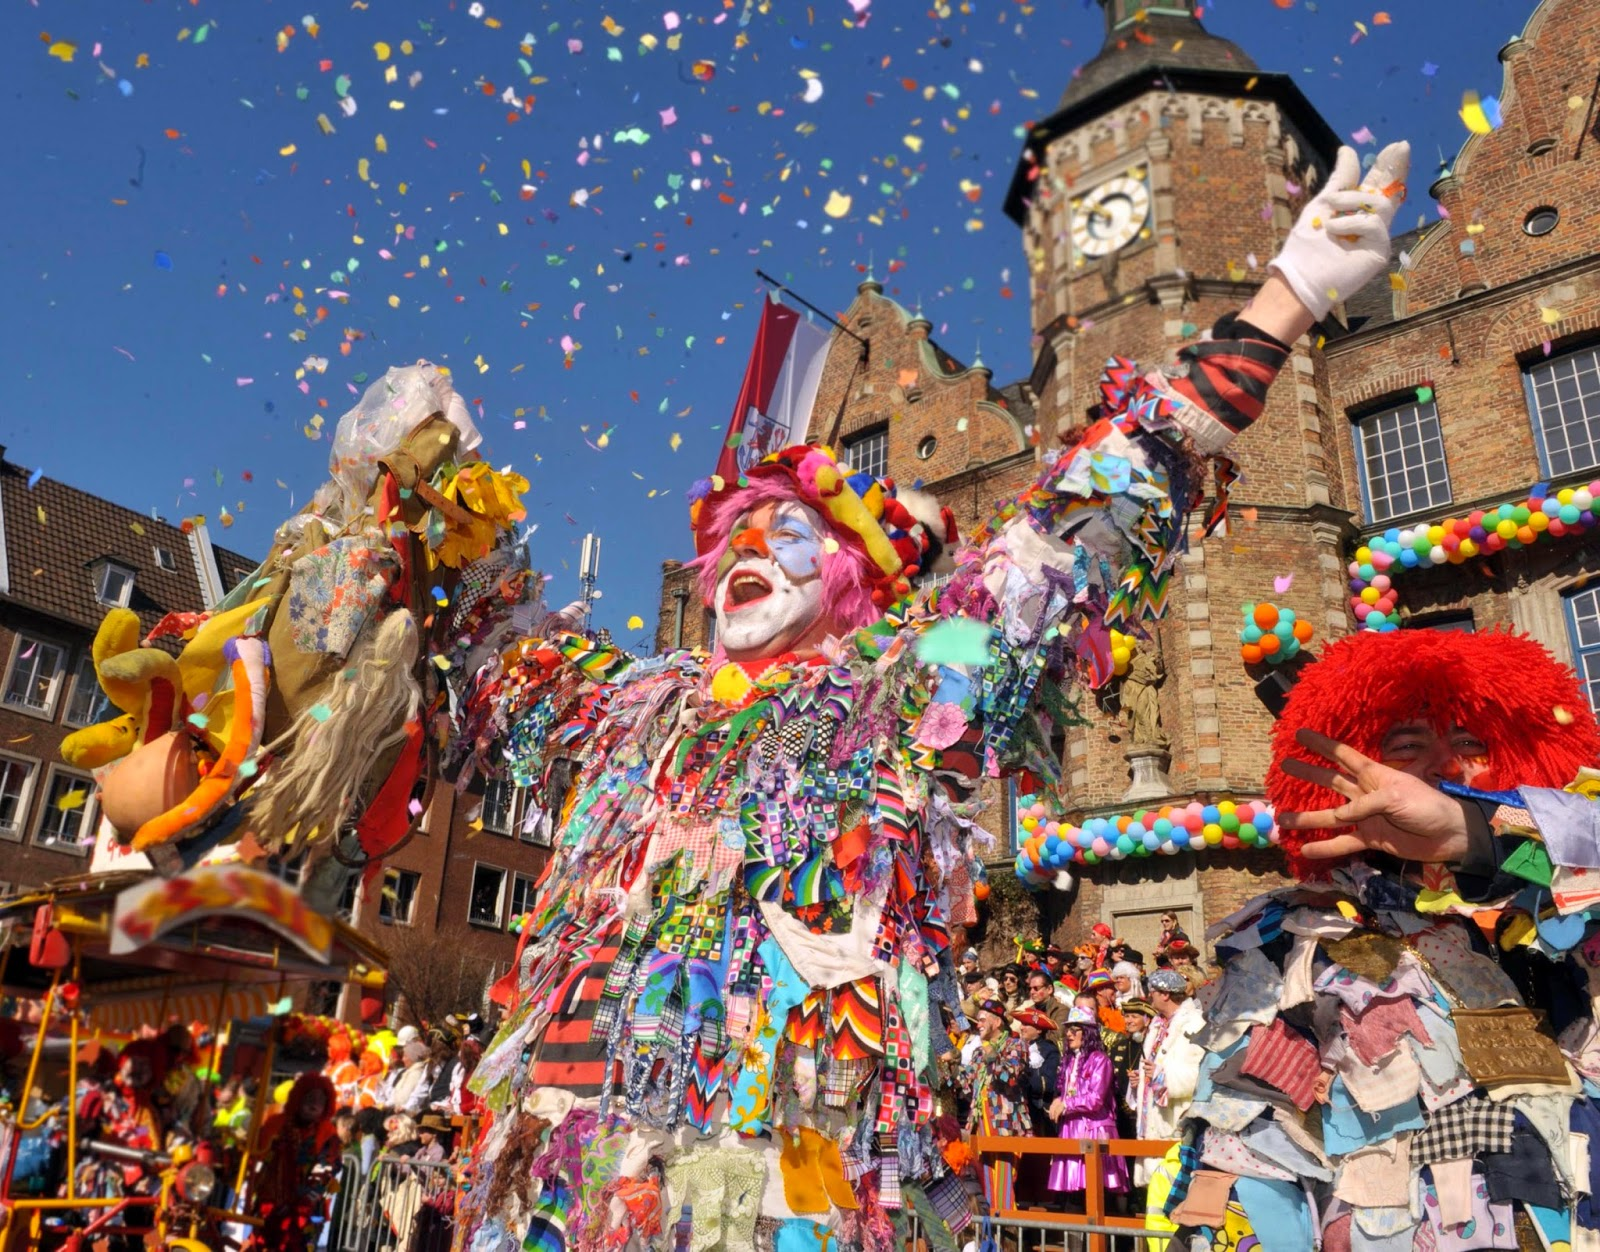 The Carnival in Cologne 2015, Germany